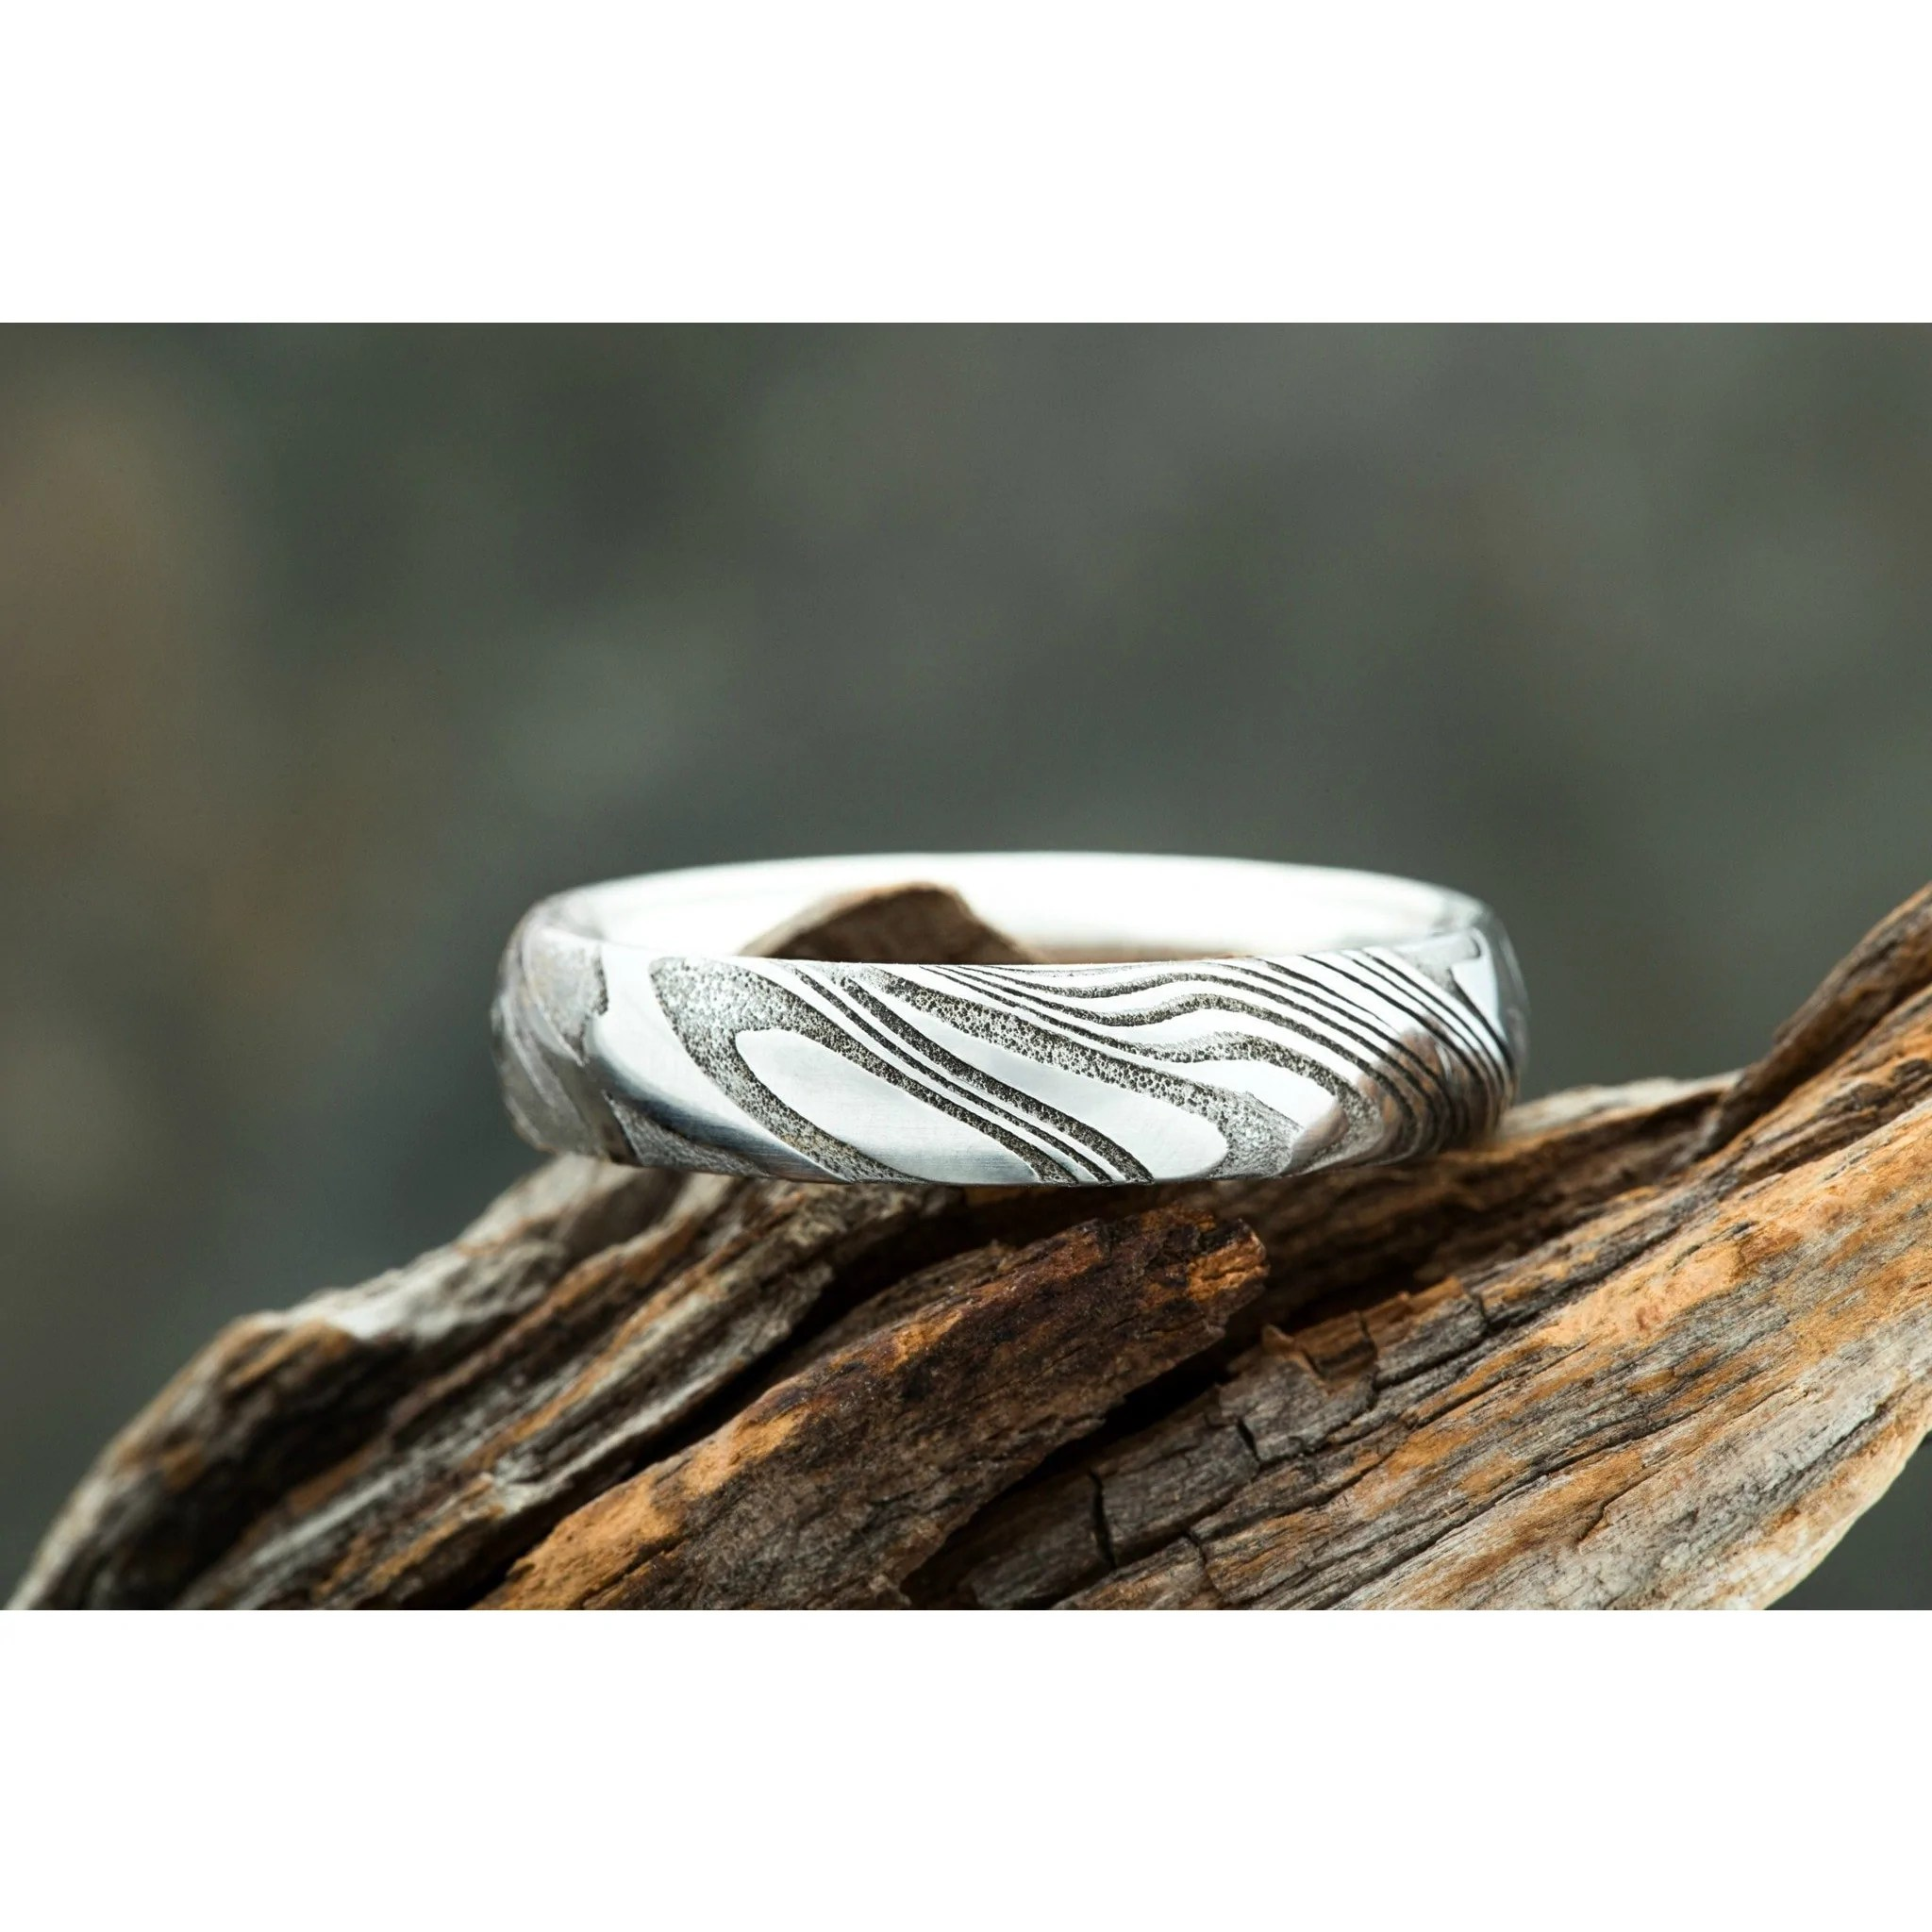 Damascus Steel Rings Damascus Collection Carbon6 Rings